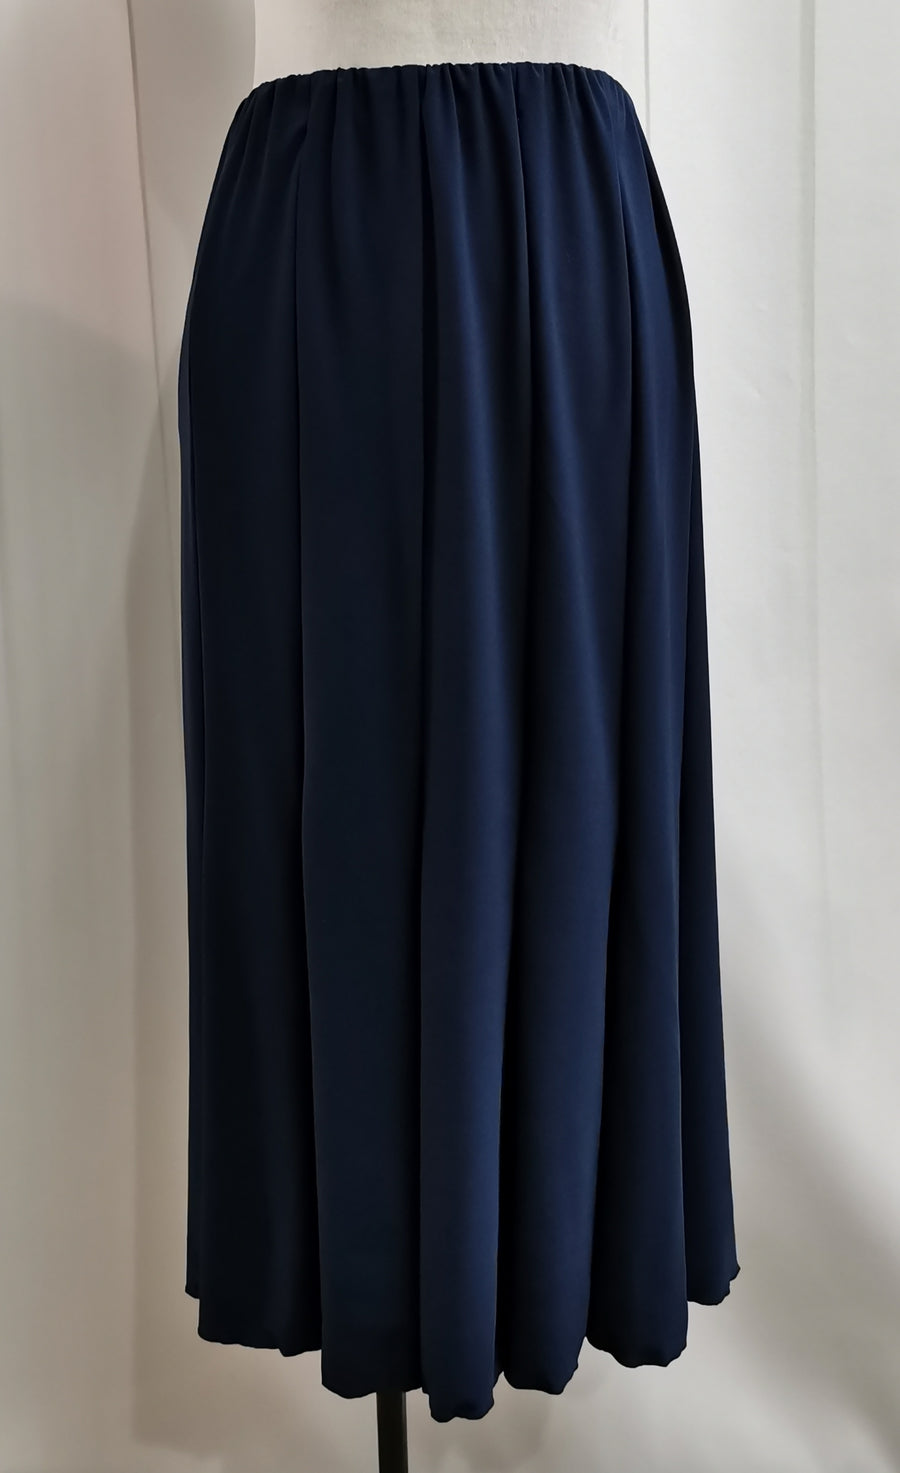 LS Collection Navy Gored Skirt - Fashion Focus